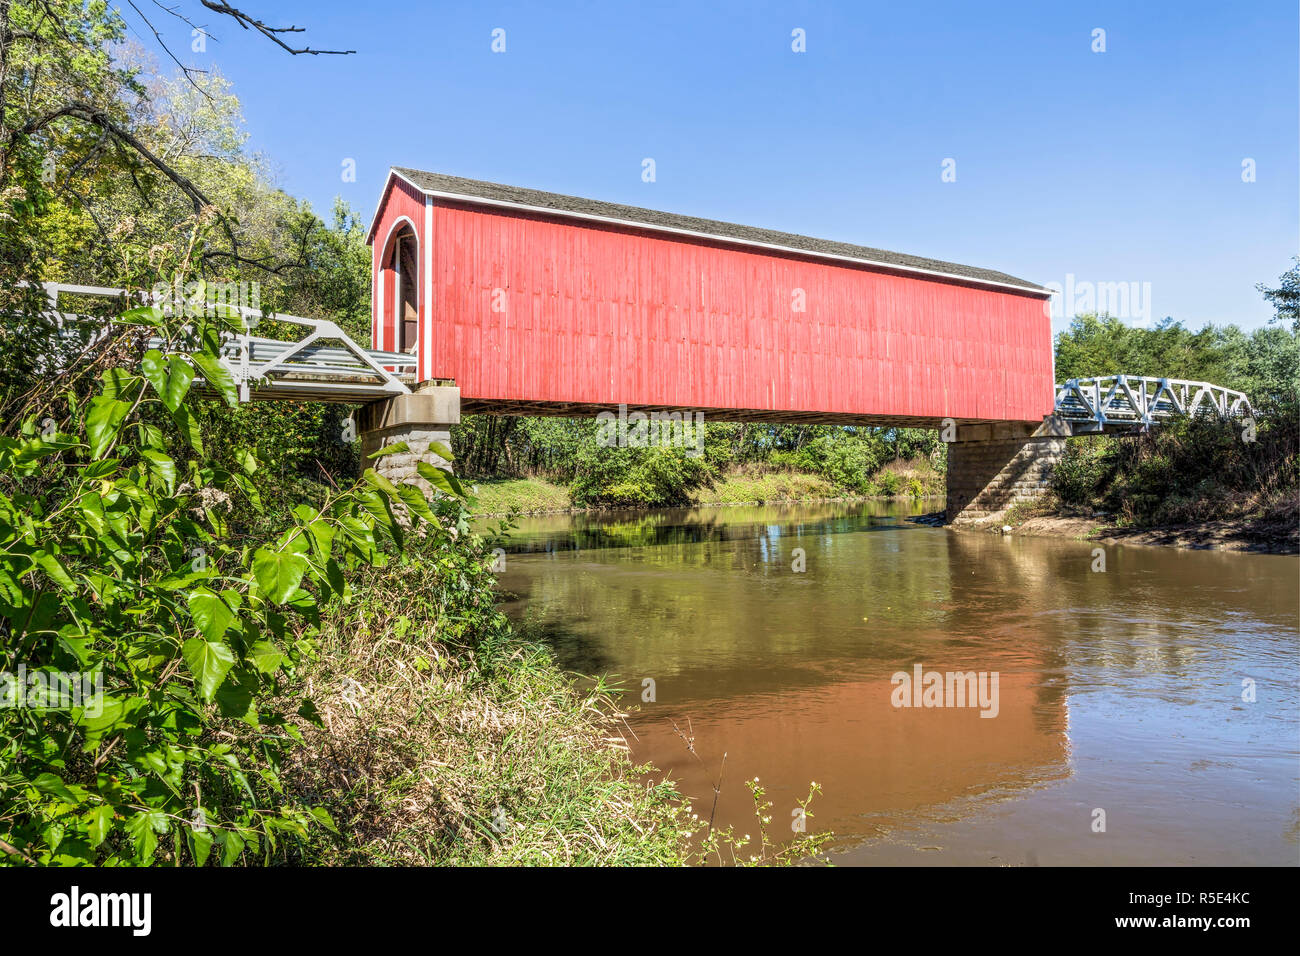 The red Wolf  Covered Bridge, with pony truss approaches, crosses the Spoon River in rural Knox County, Illinois. Stock Photo